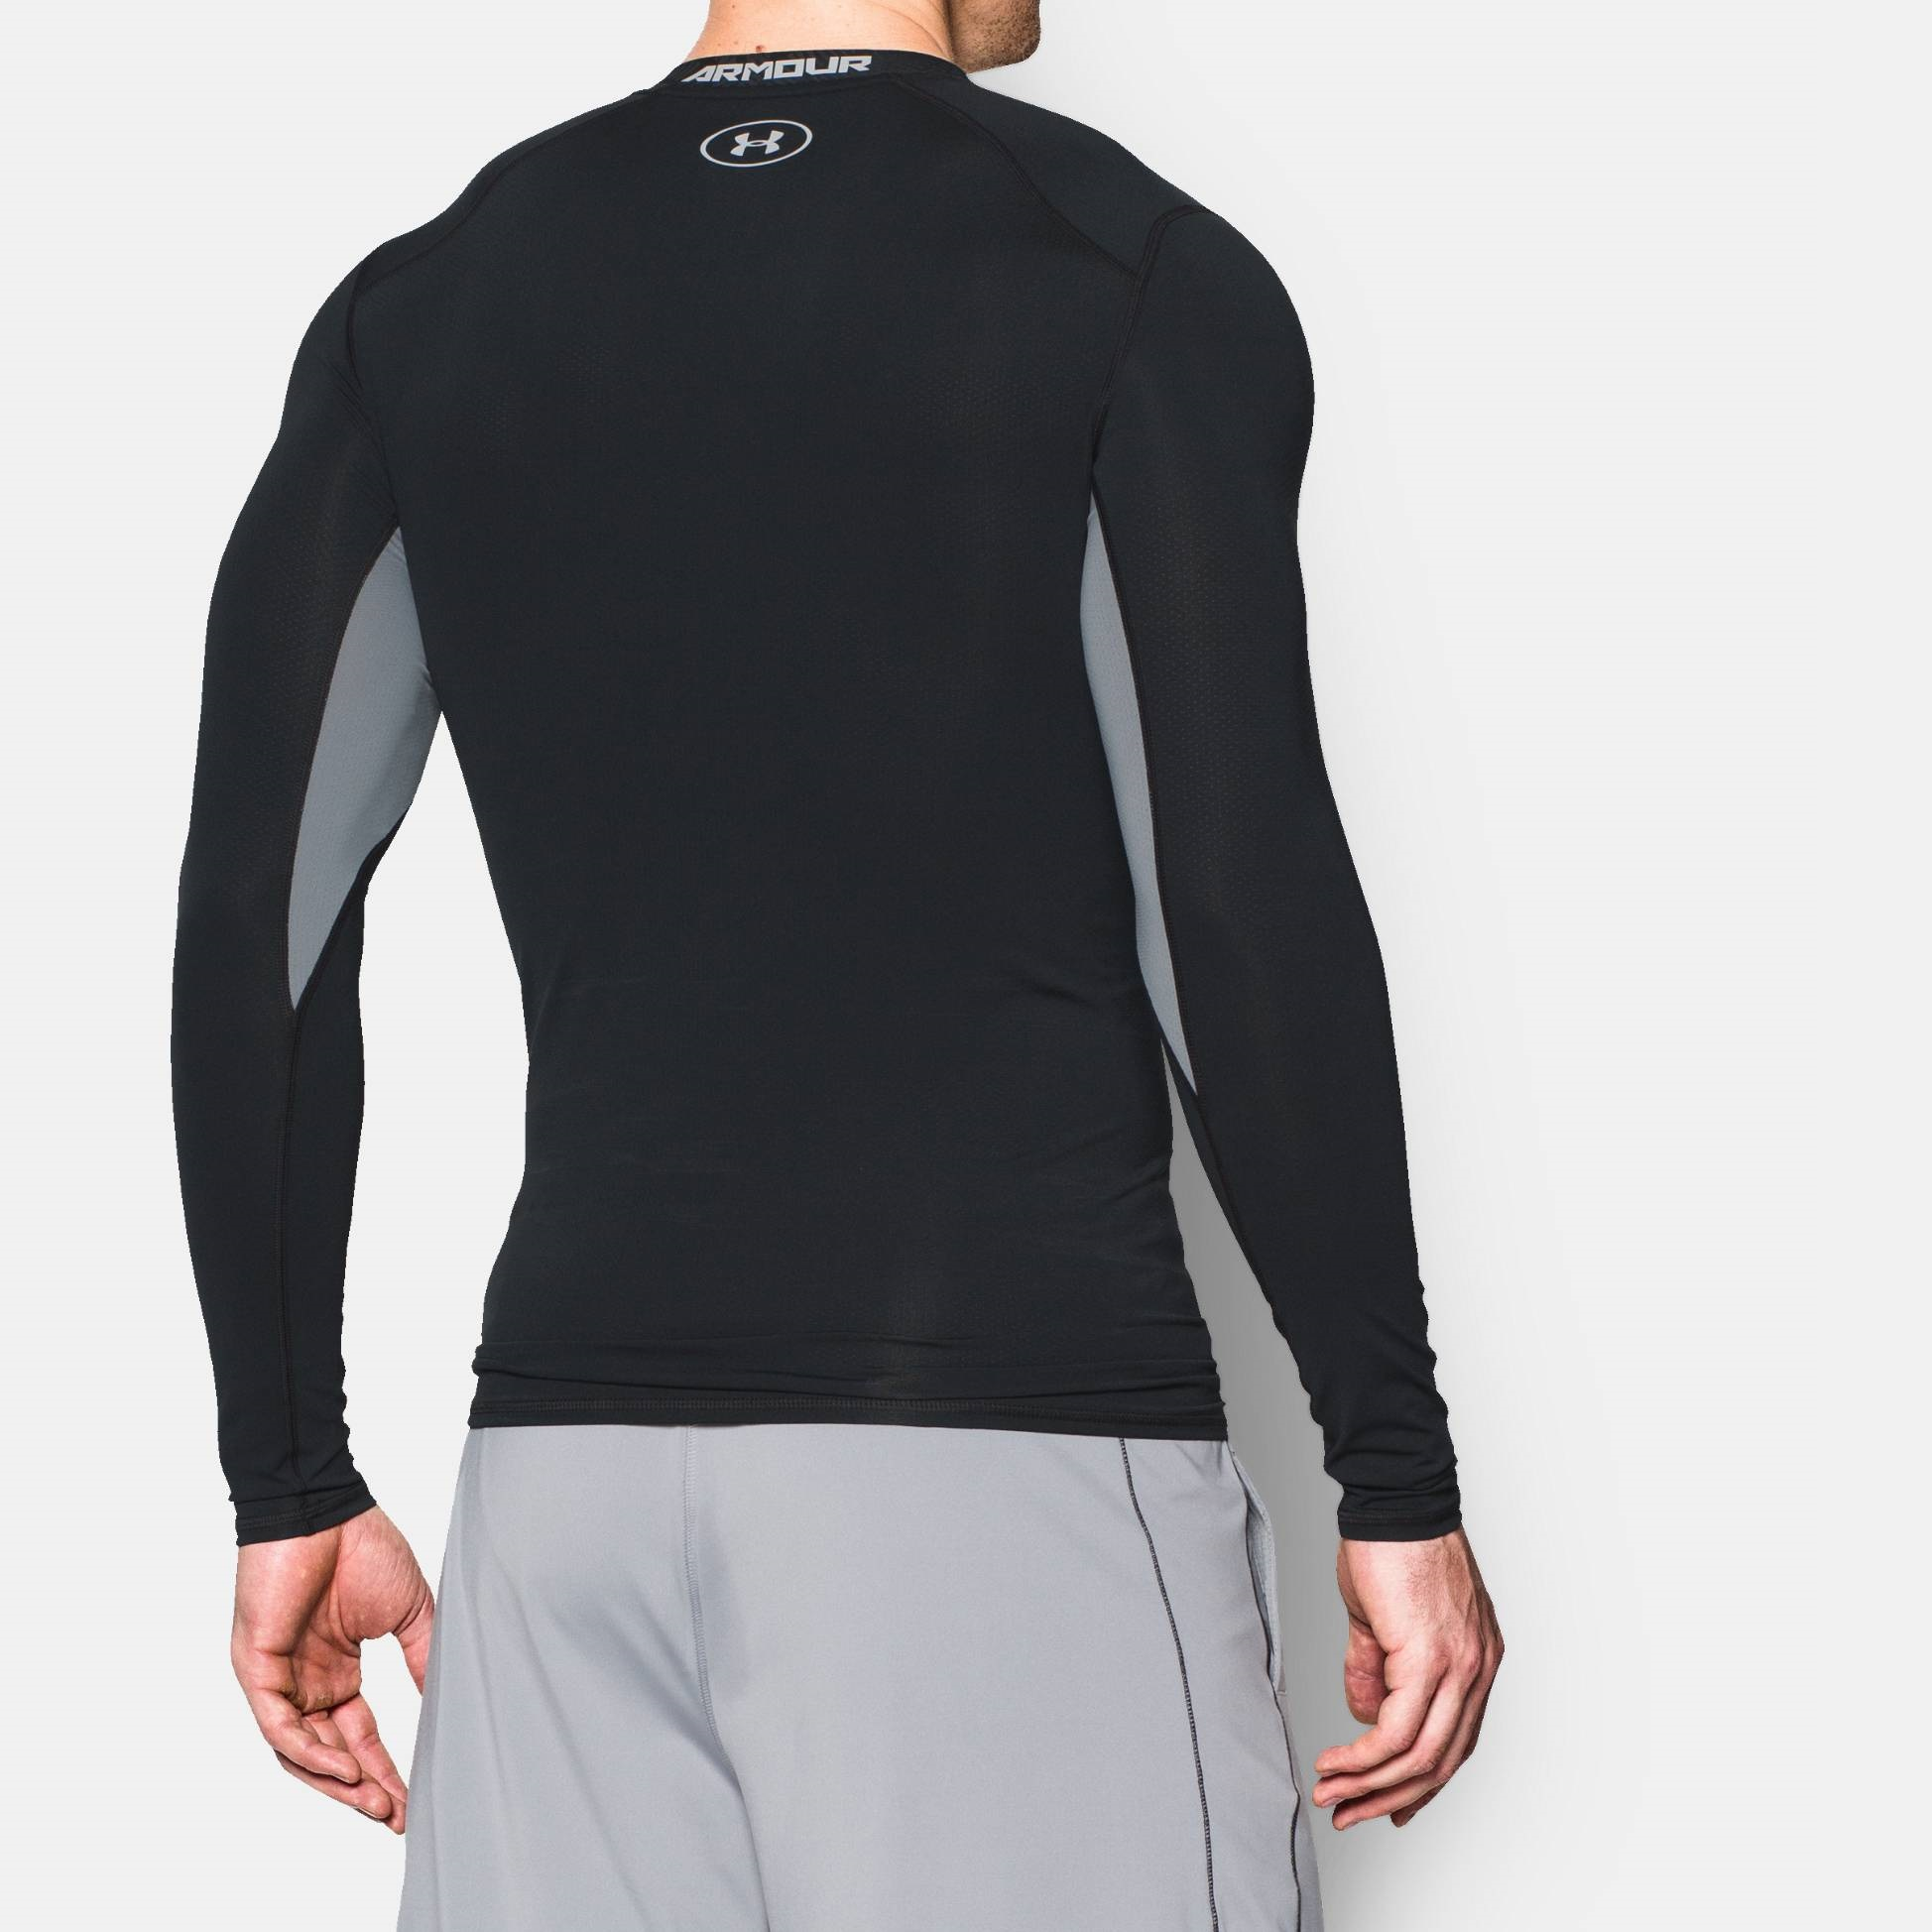 Clothing Under Armour Coolswitch Compression Shirt Fitness